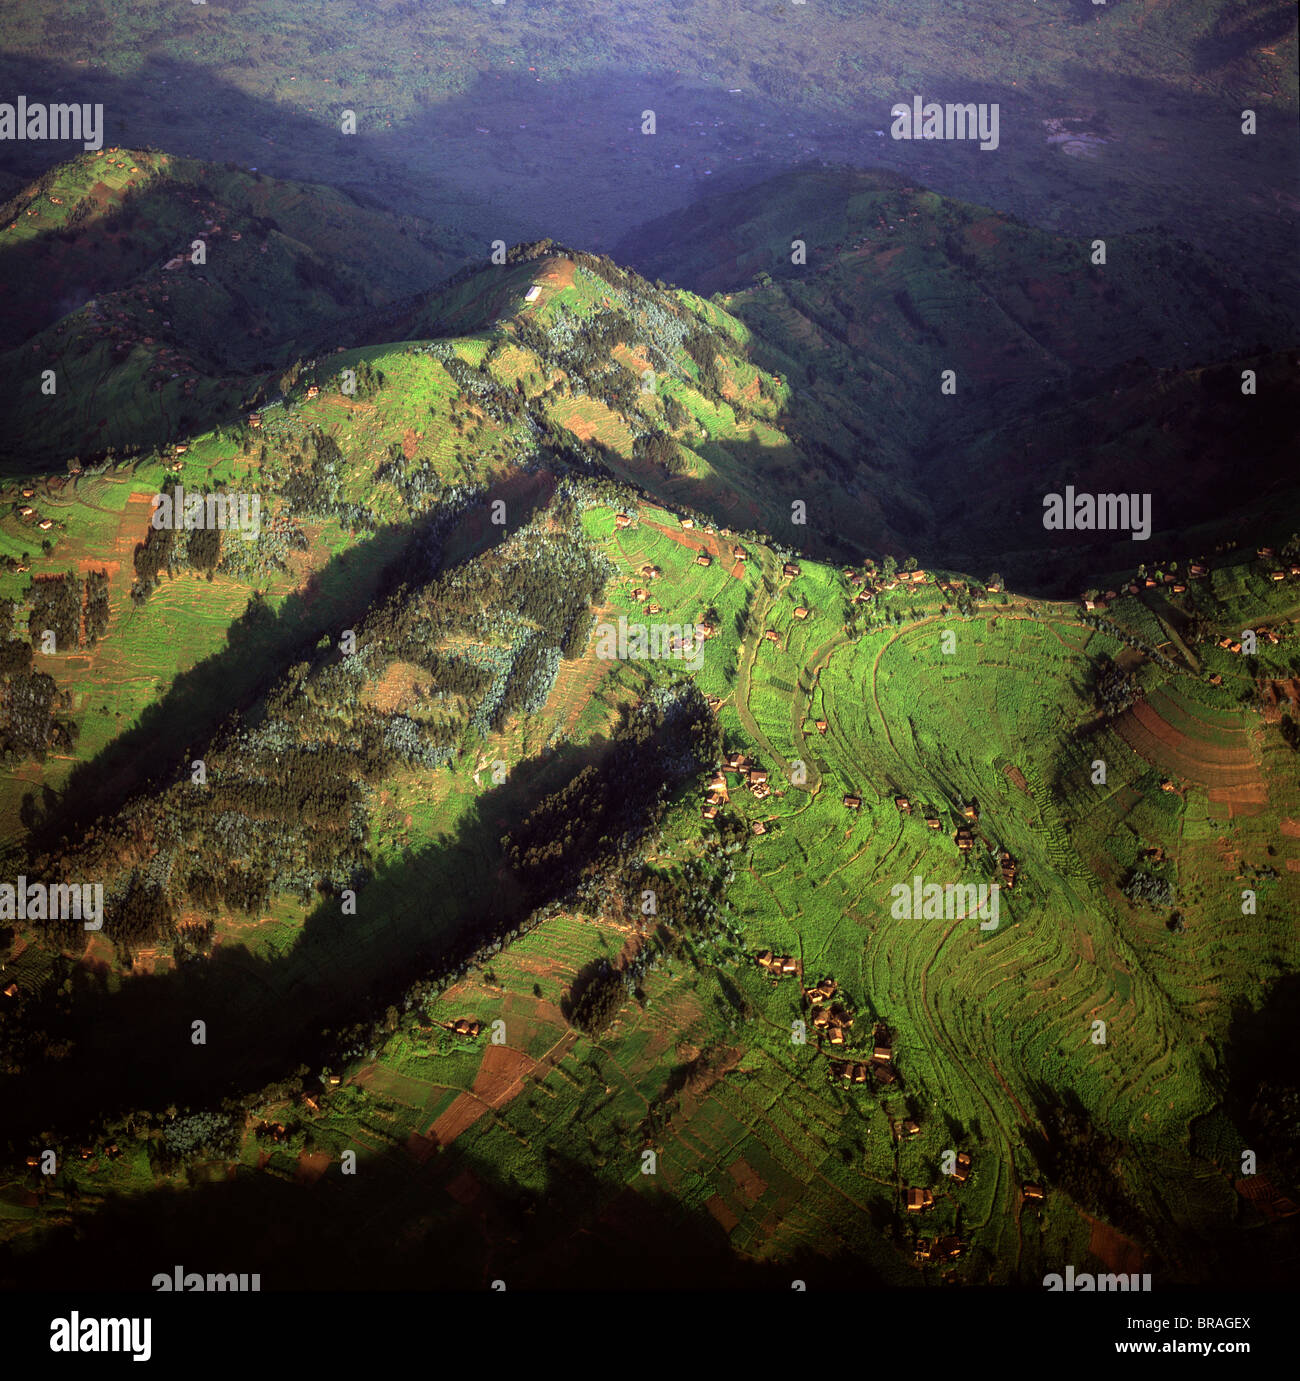 Aerial view of intensive agriculture in Rwanda, Africa Stock Photo